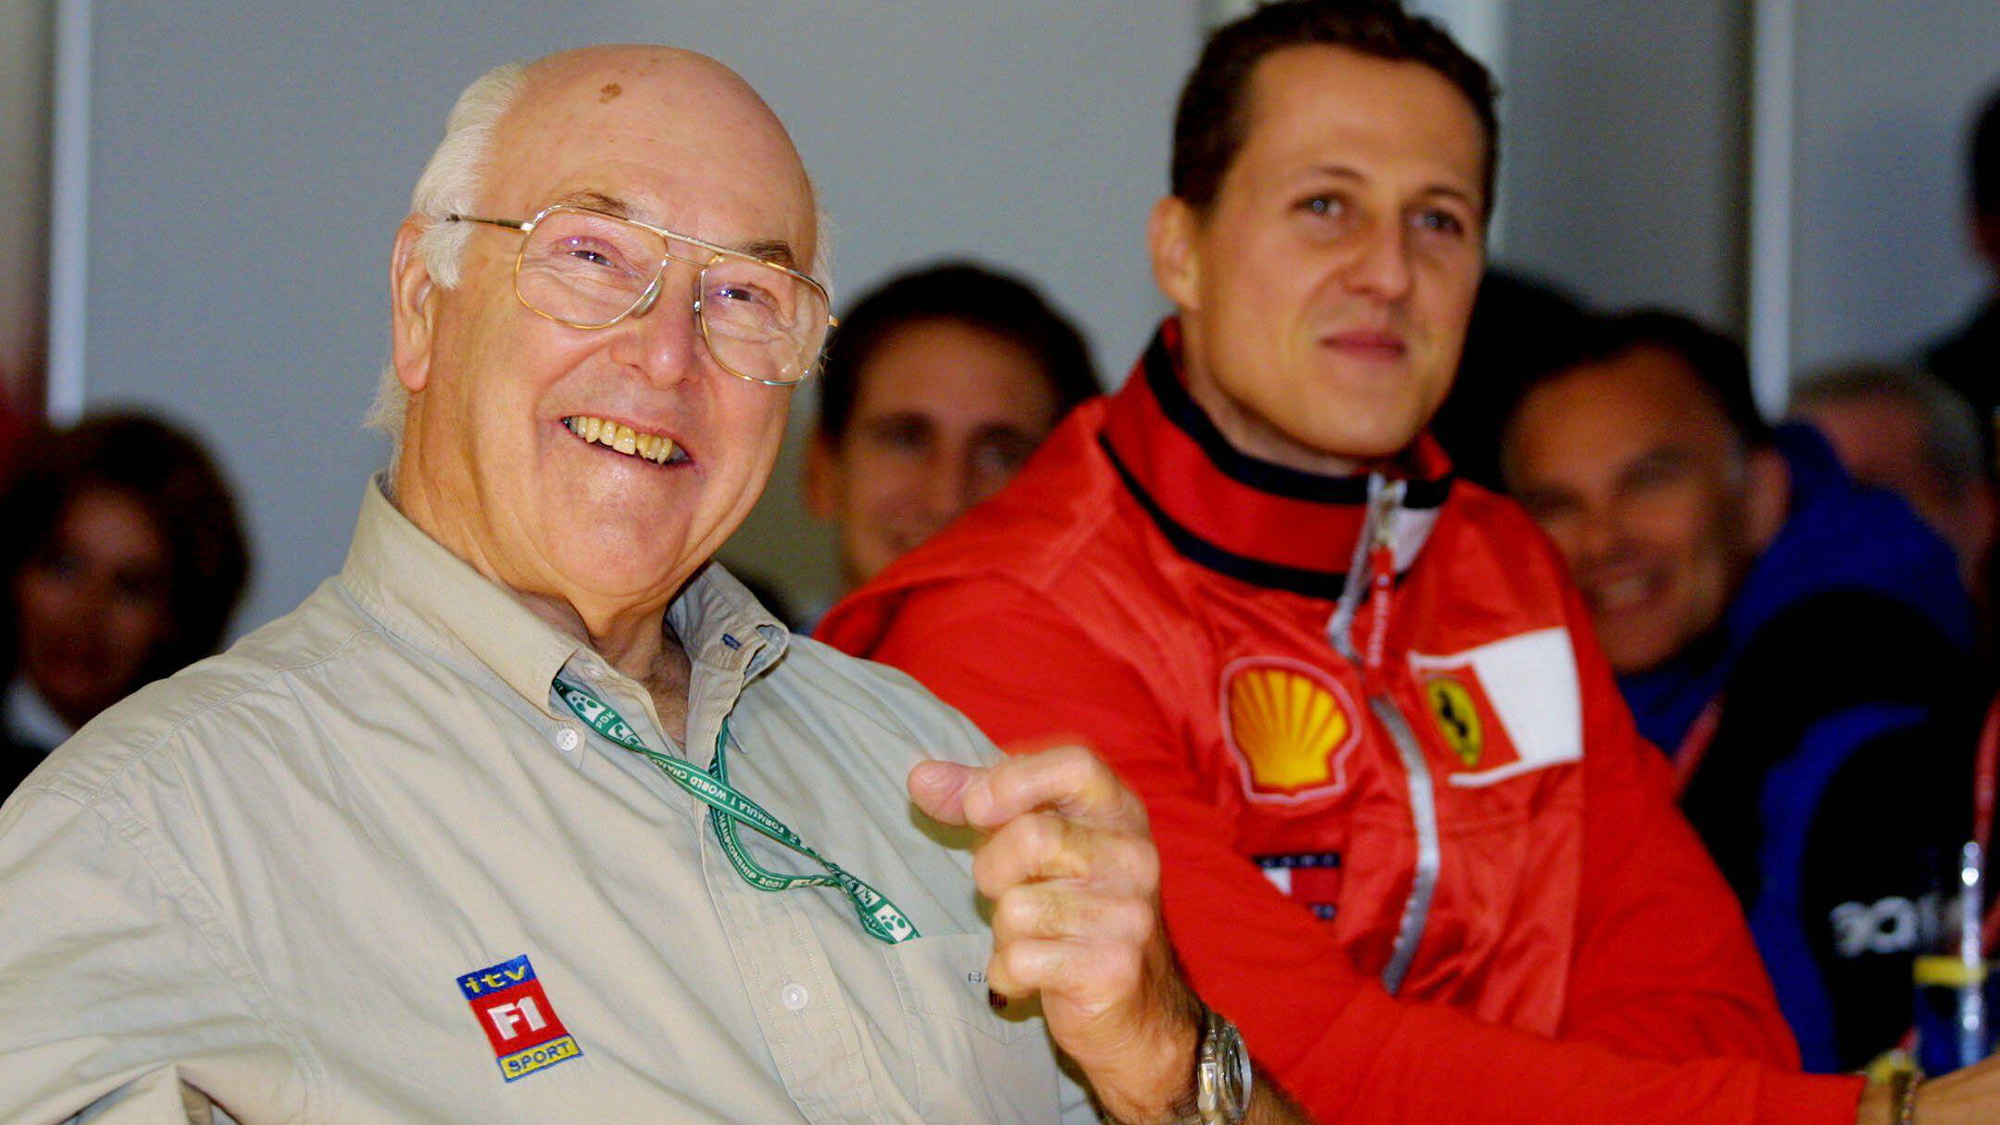 Michael Schumacher with Murray Walker at the 2001 US Grand Prix